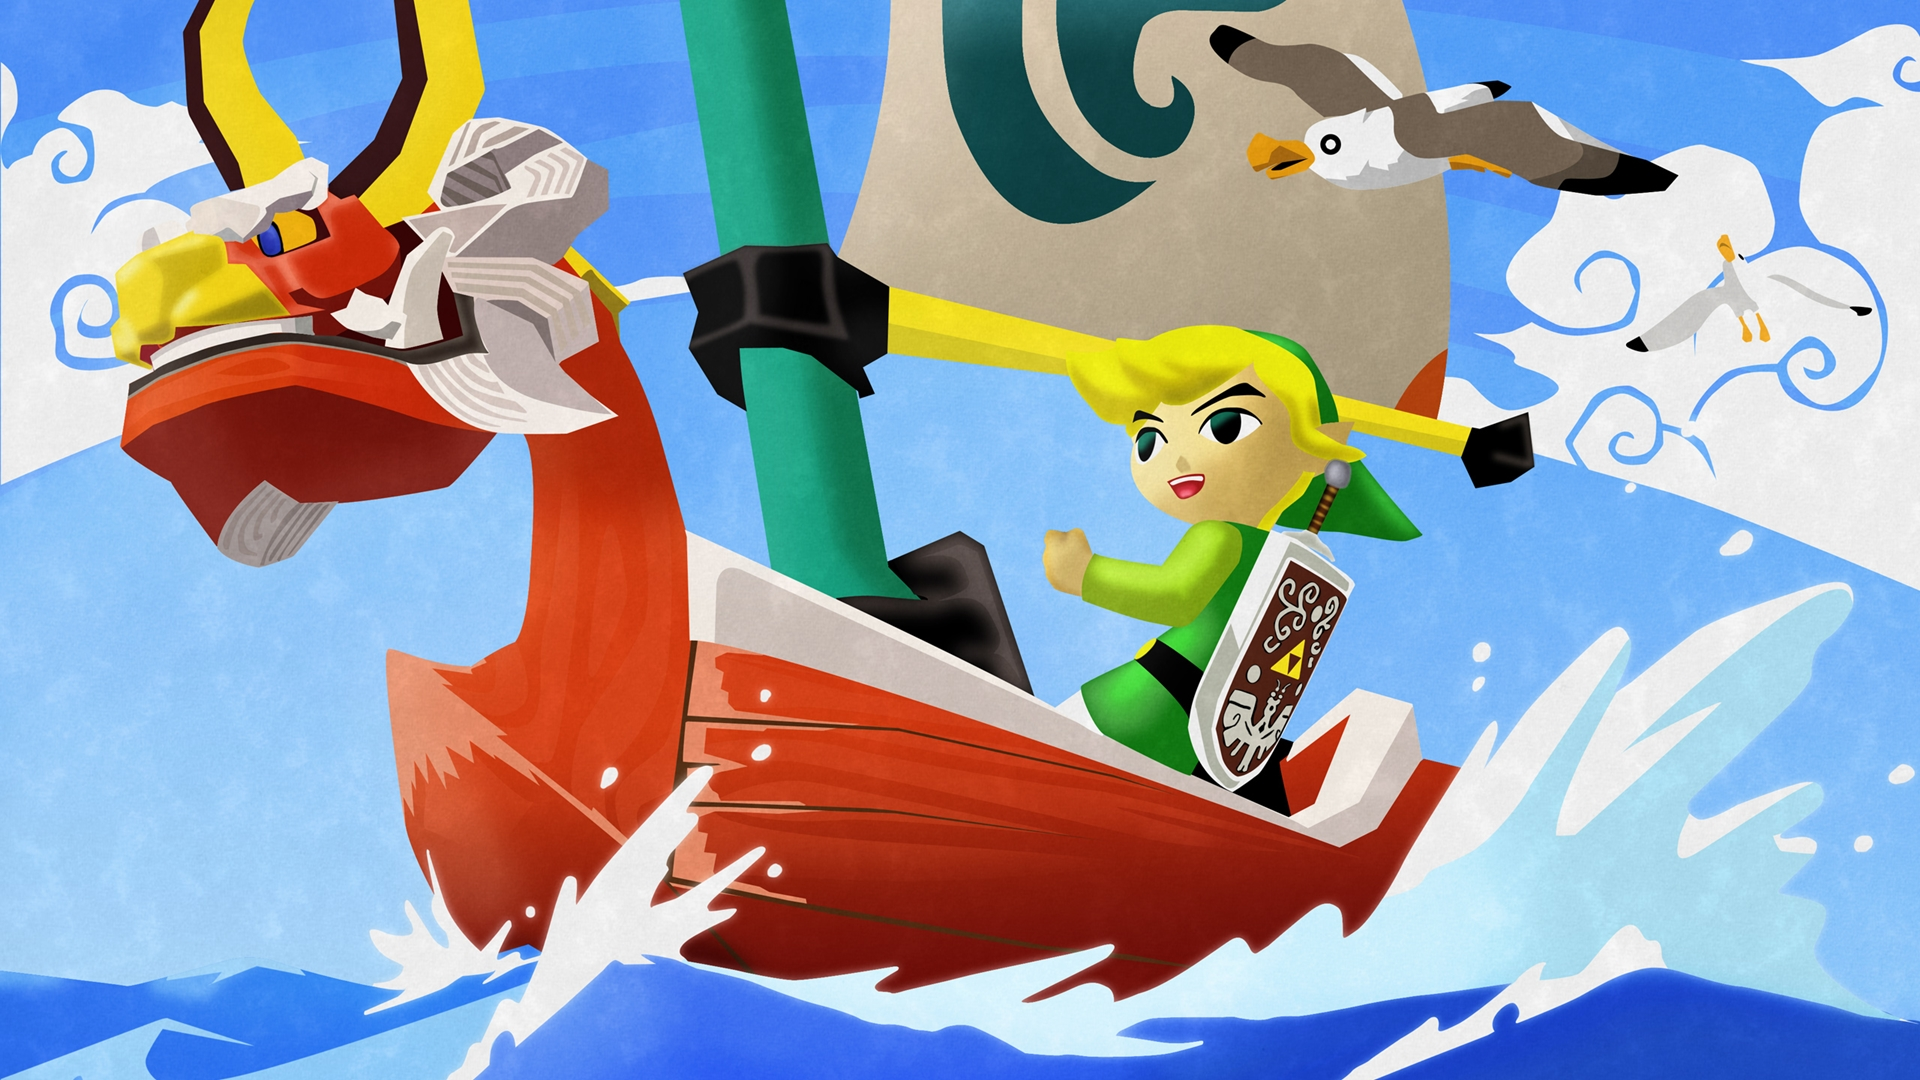 Free Download Zelda Wind Waker Hd Wallpaper Cool Wallpapers